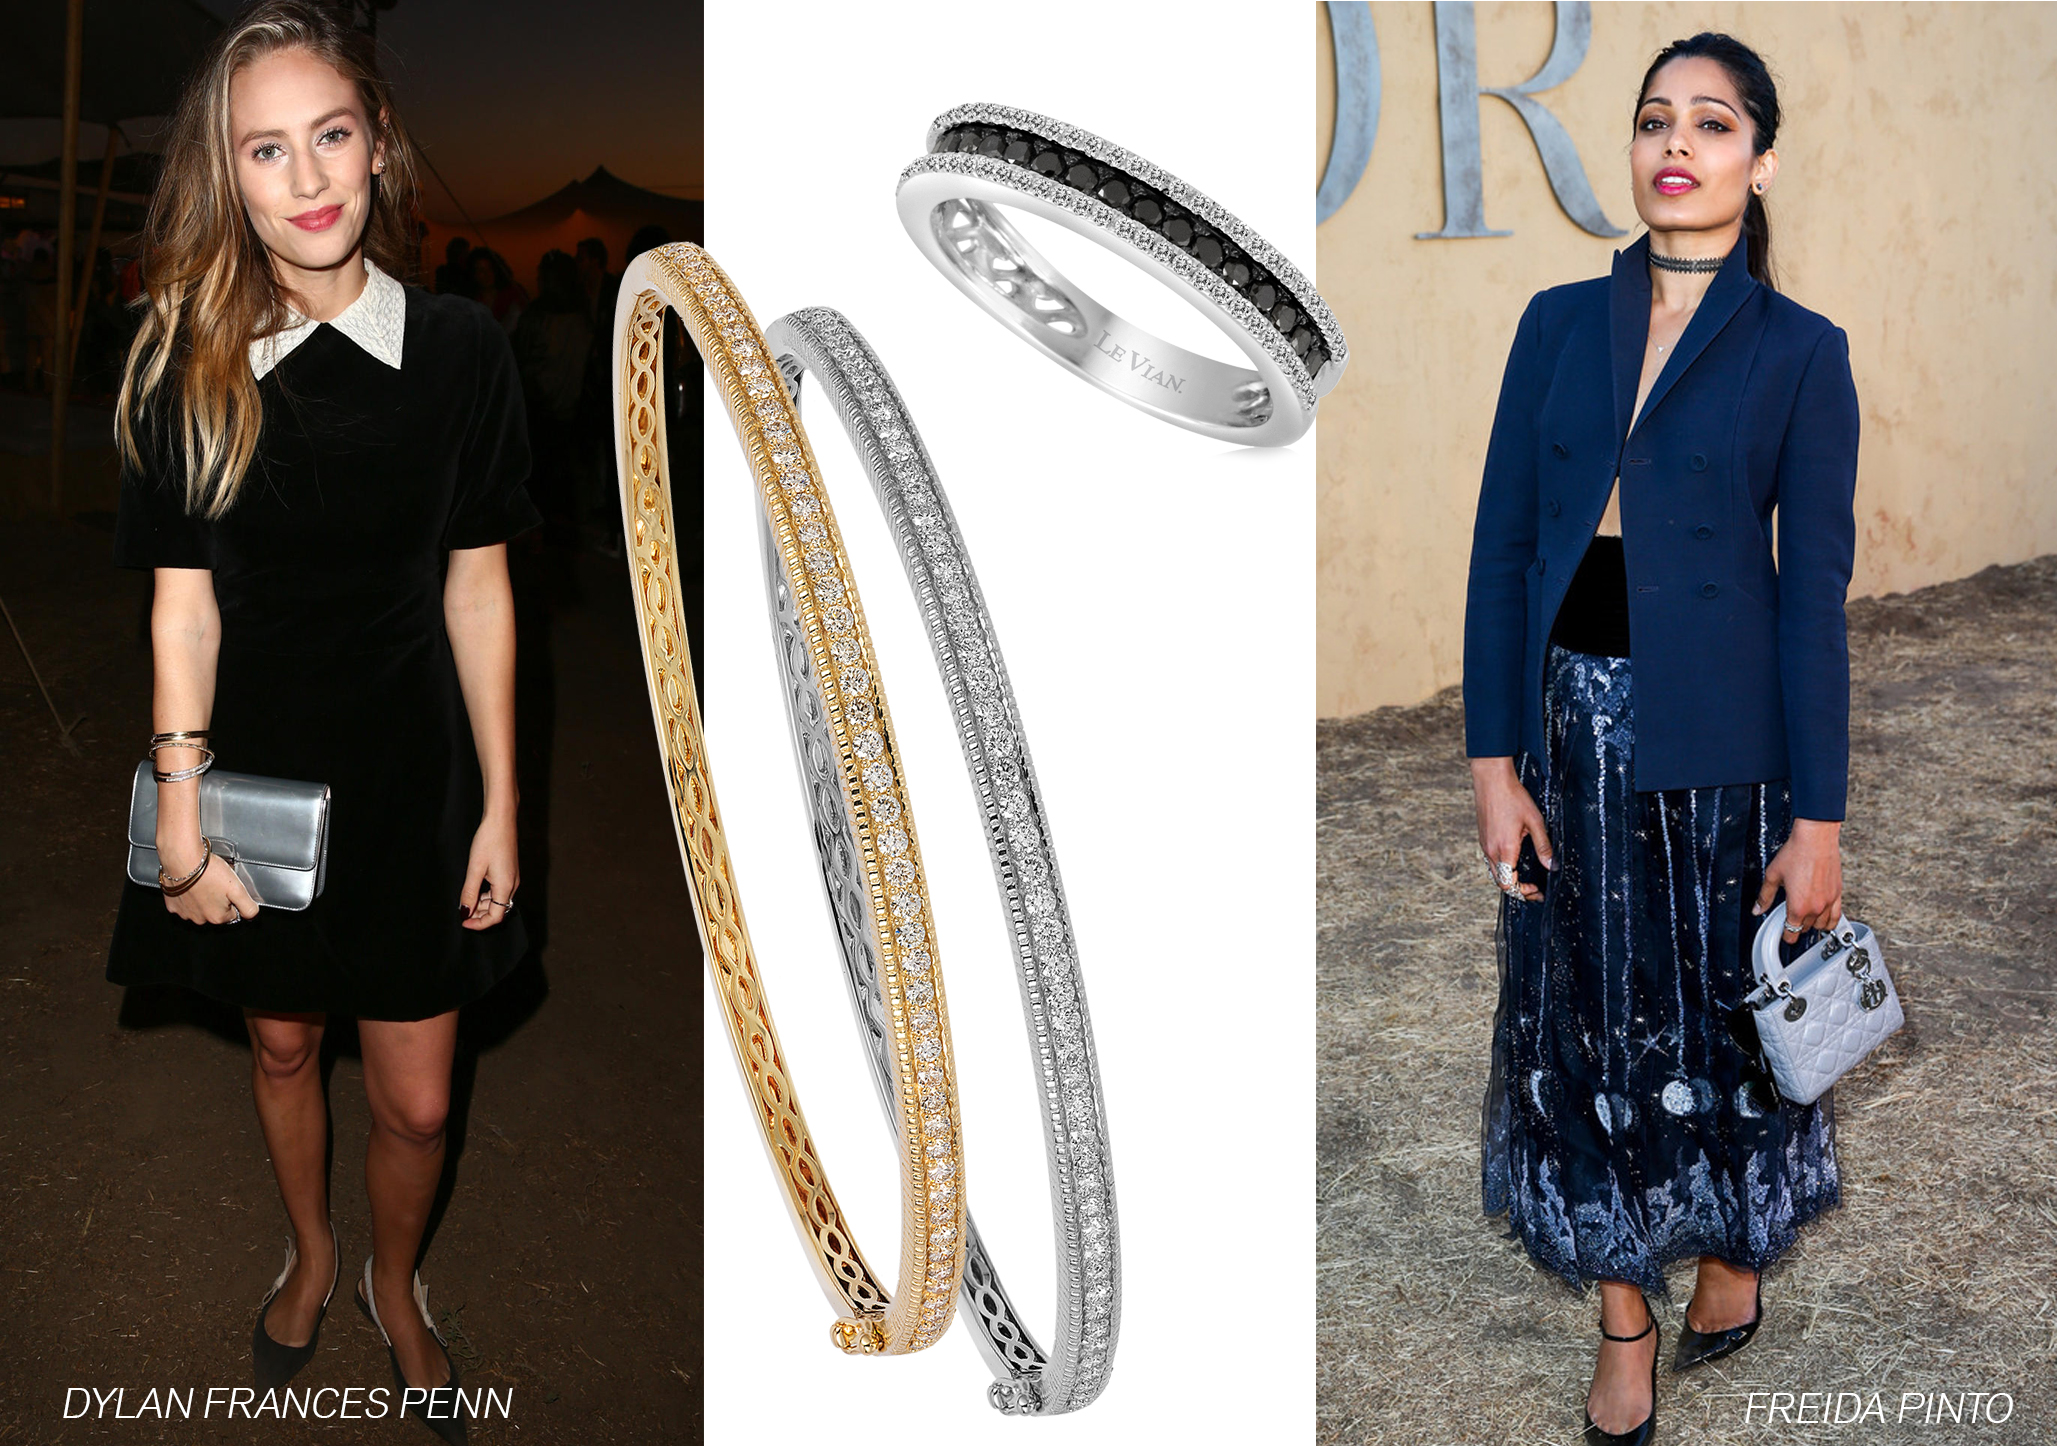 Stars Wear Le Vian® Jewelry to Christian Dior Runway Show in California